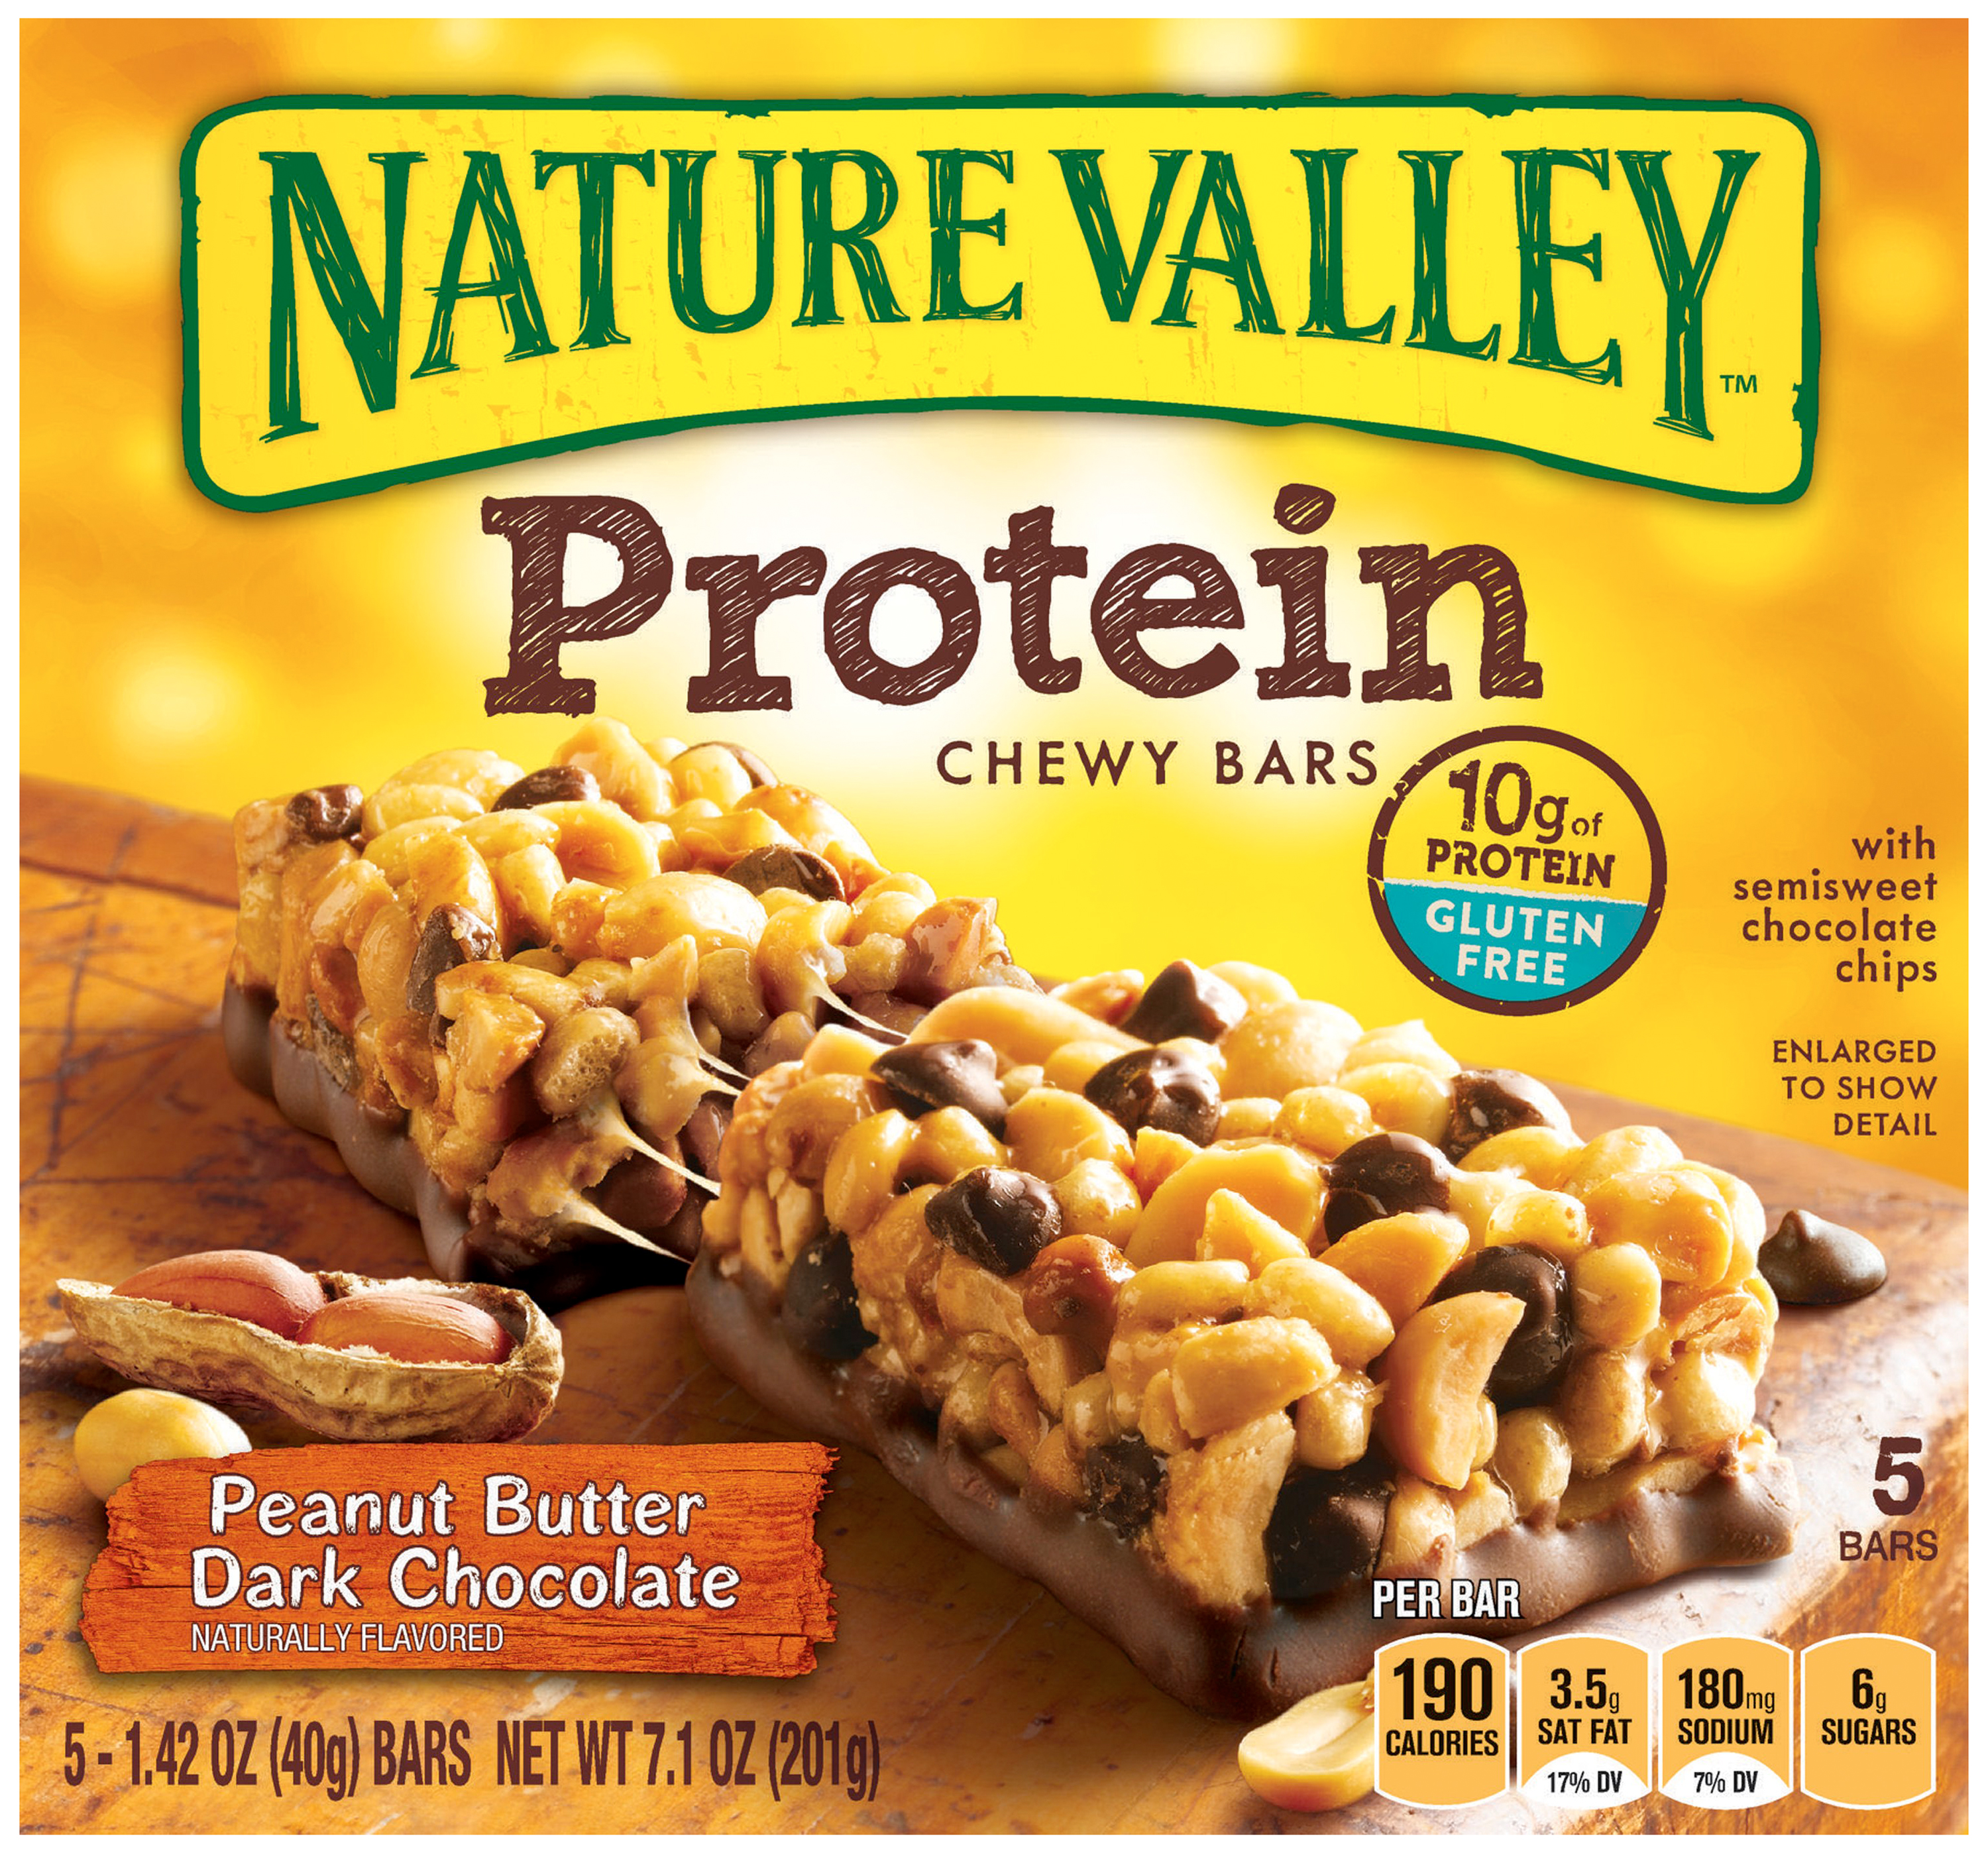 Nature Valley® Peanut Butter Dark Chocolate Protein Chewy Bars 5 ct Box